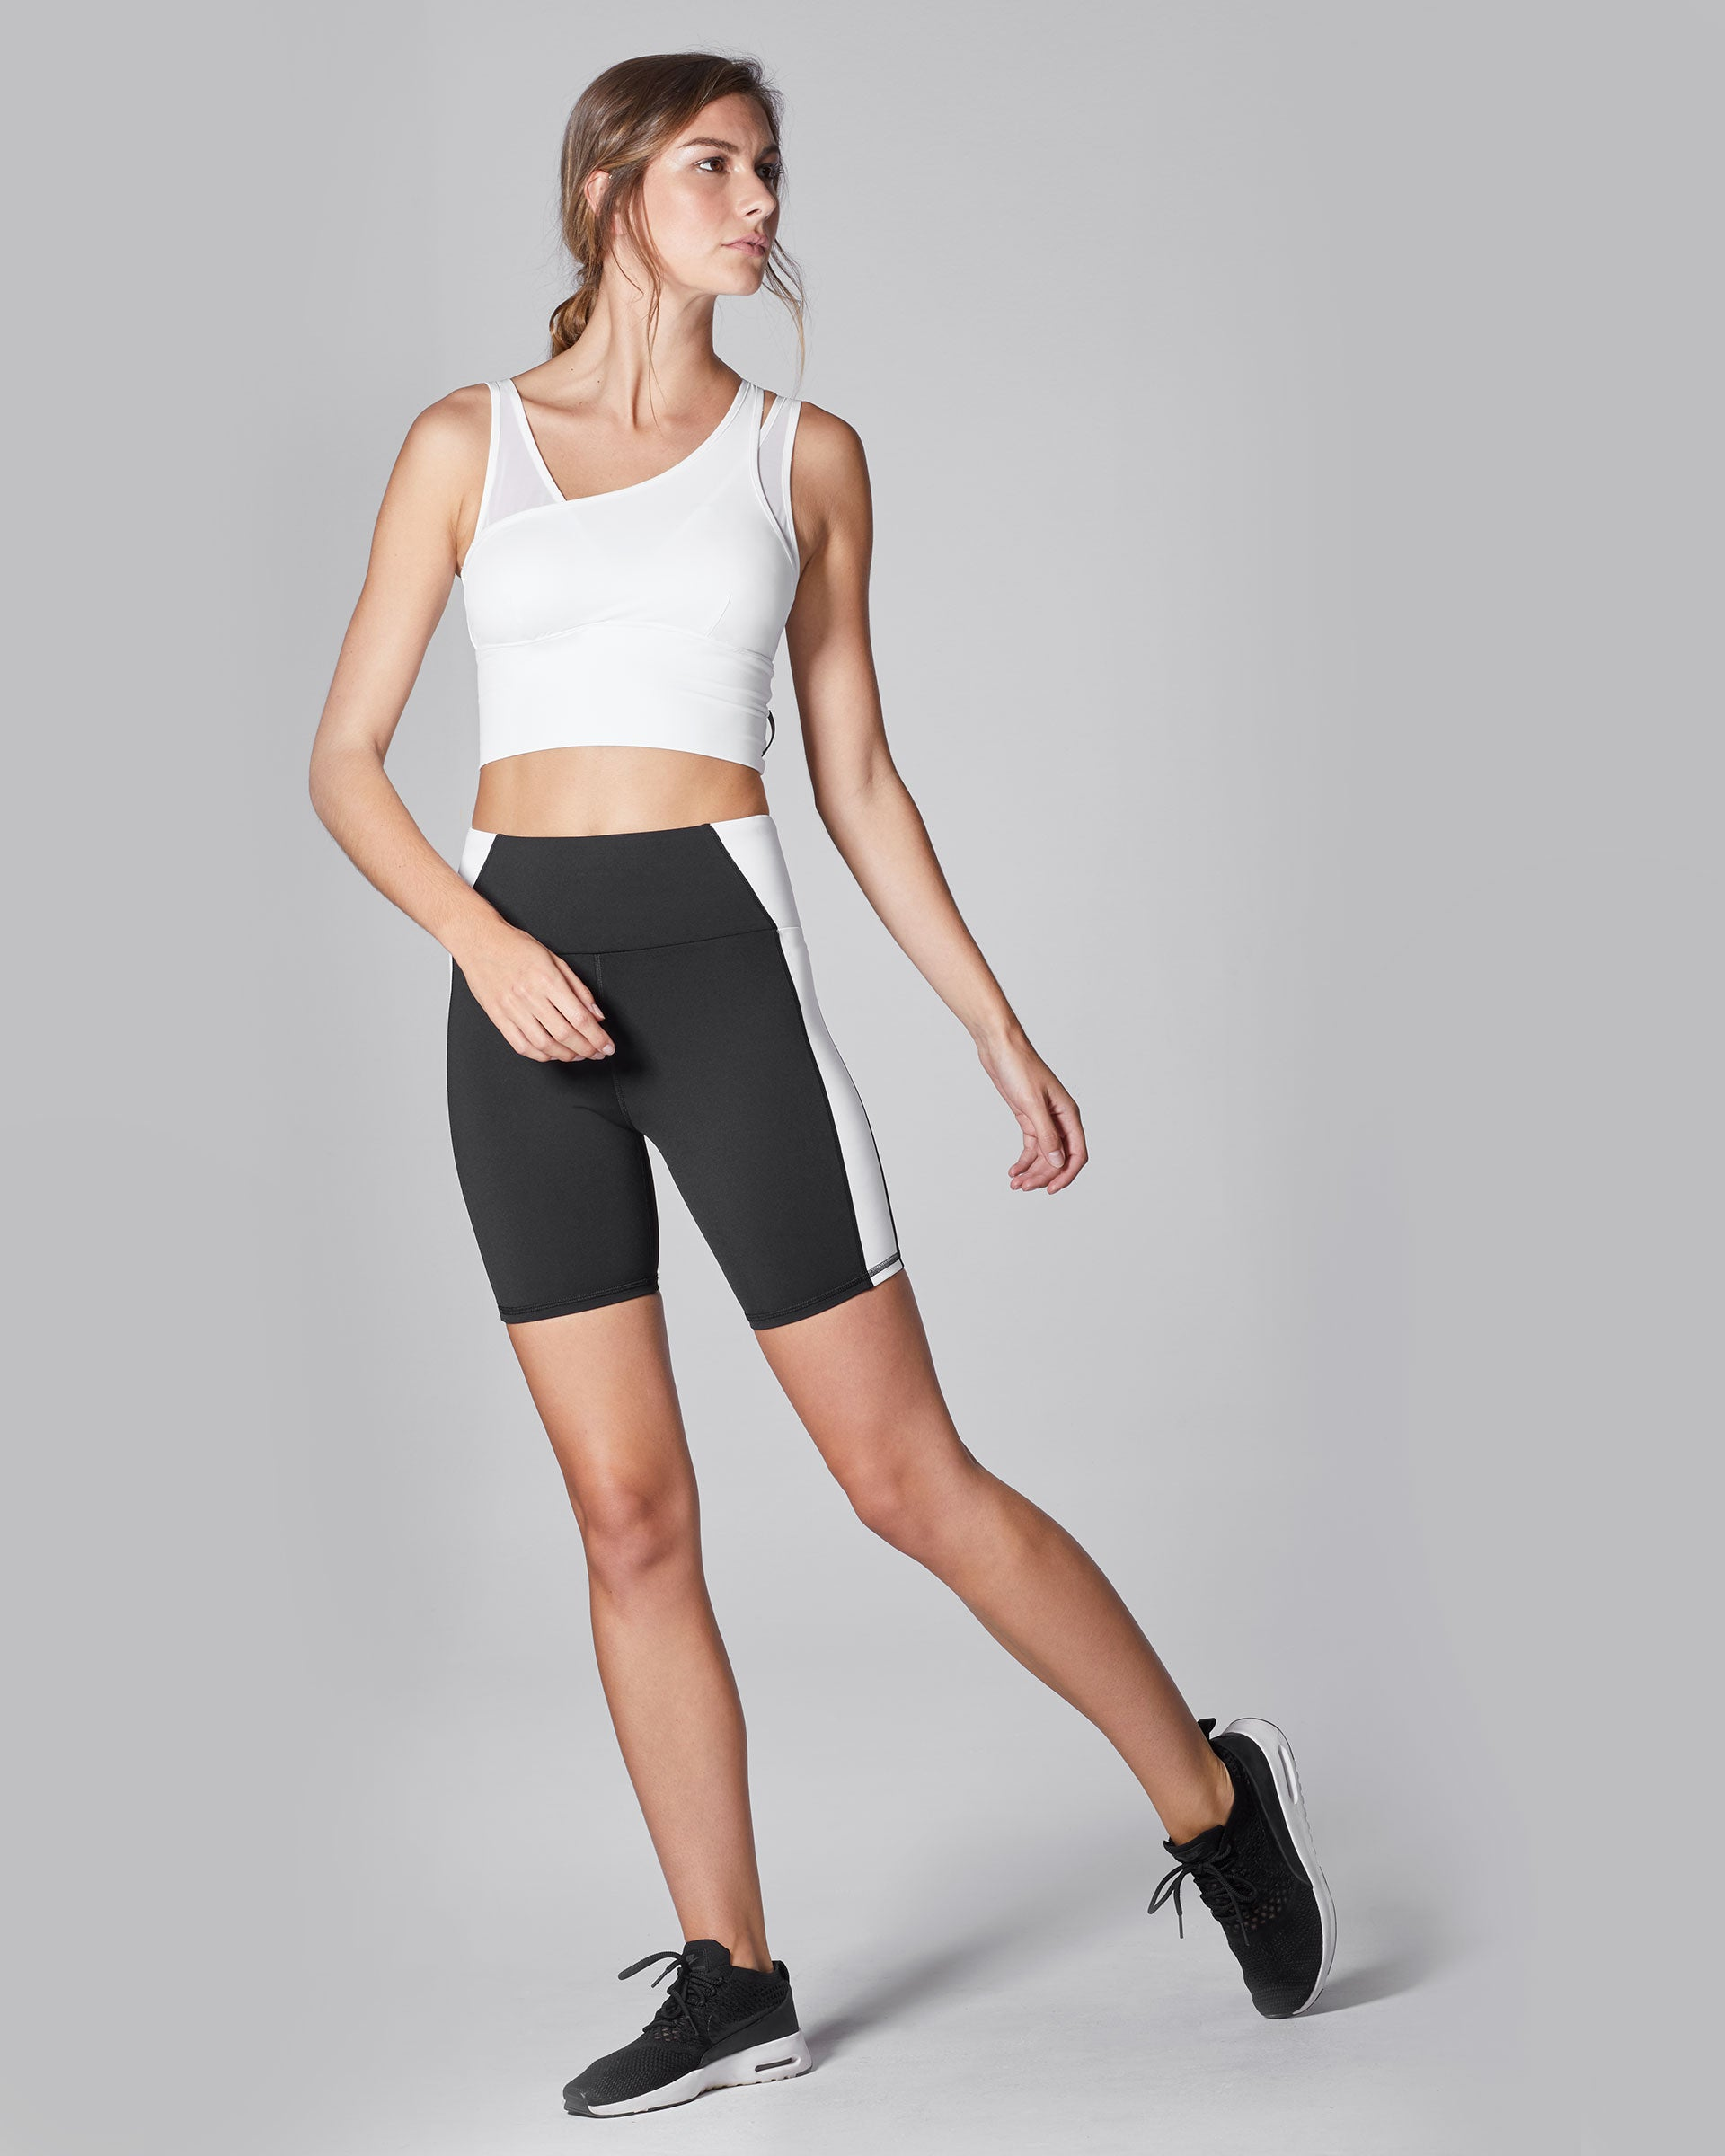 Vibe Bike Short - Black/White